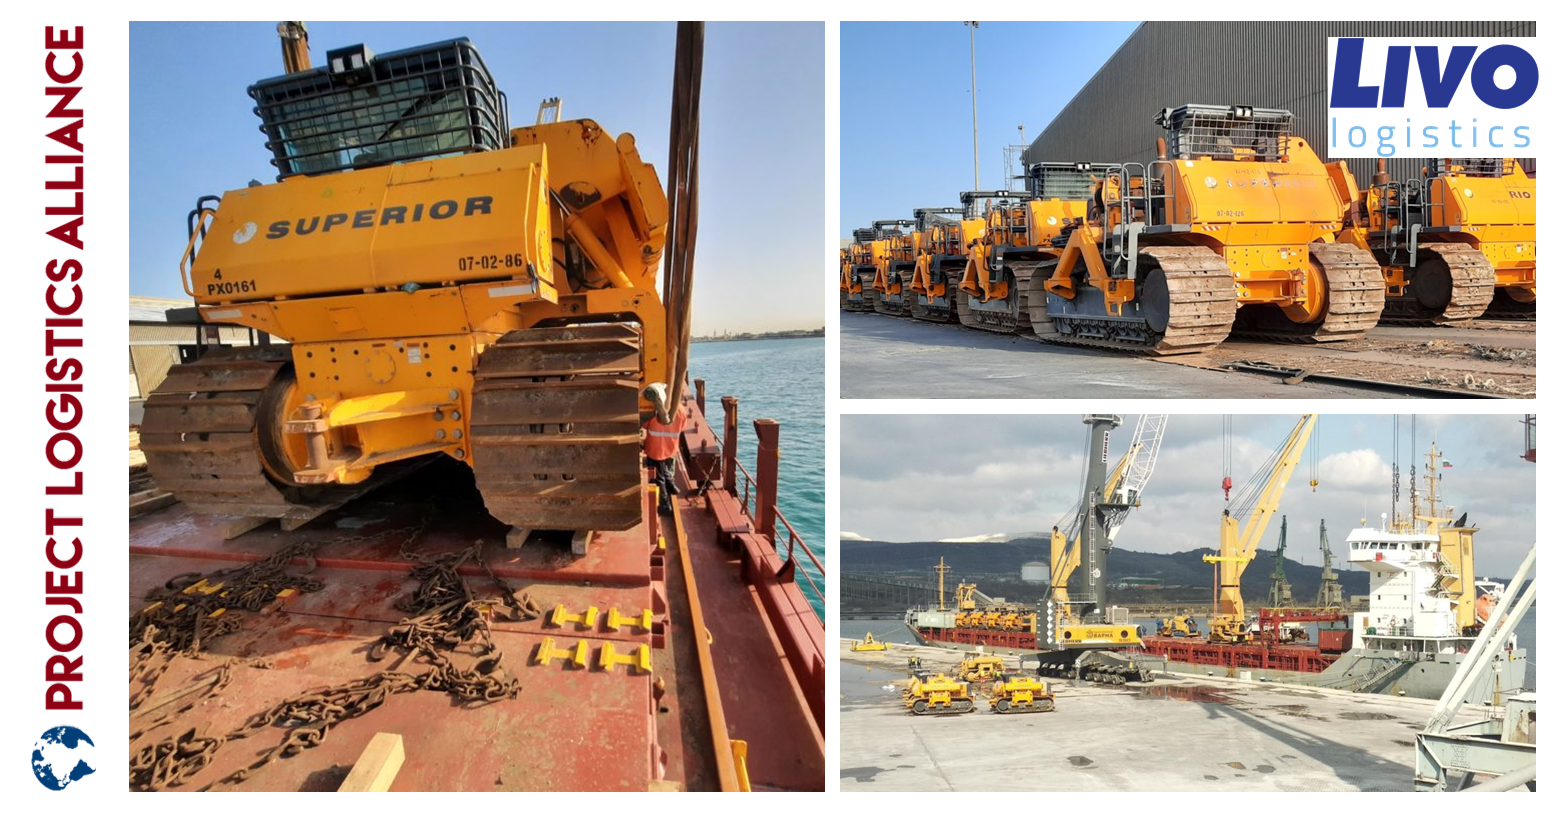 LIVO Logistics Ships 82 Machines Construction Equipment From Bulgaria To Saudi Arabia